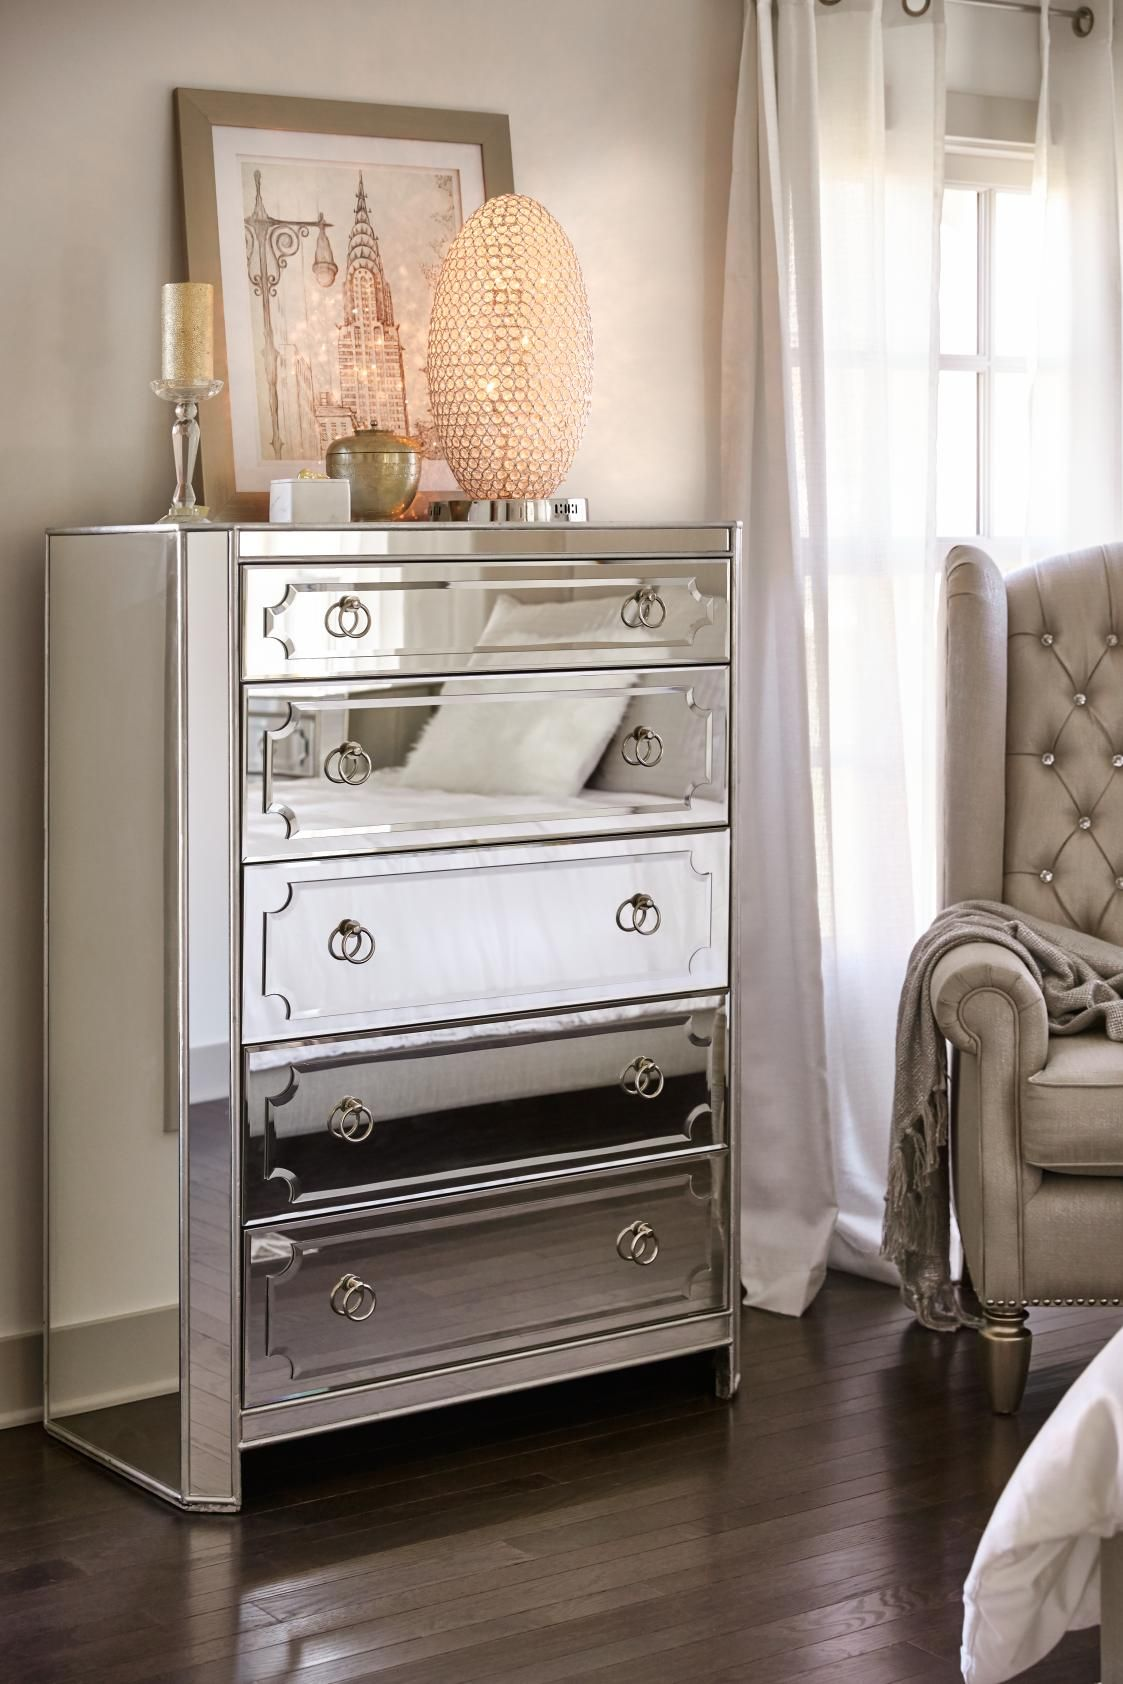 Get The Glam Lifestyle You Ve Always Dreamed Of With Our Stunning Shiny Harlow Ch Mirrored Bedroom Furniture Mirrored Dresser Bedroom Luxury Bedroom Furniture